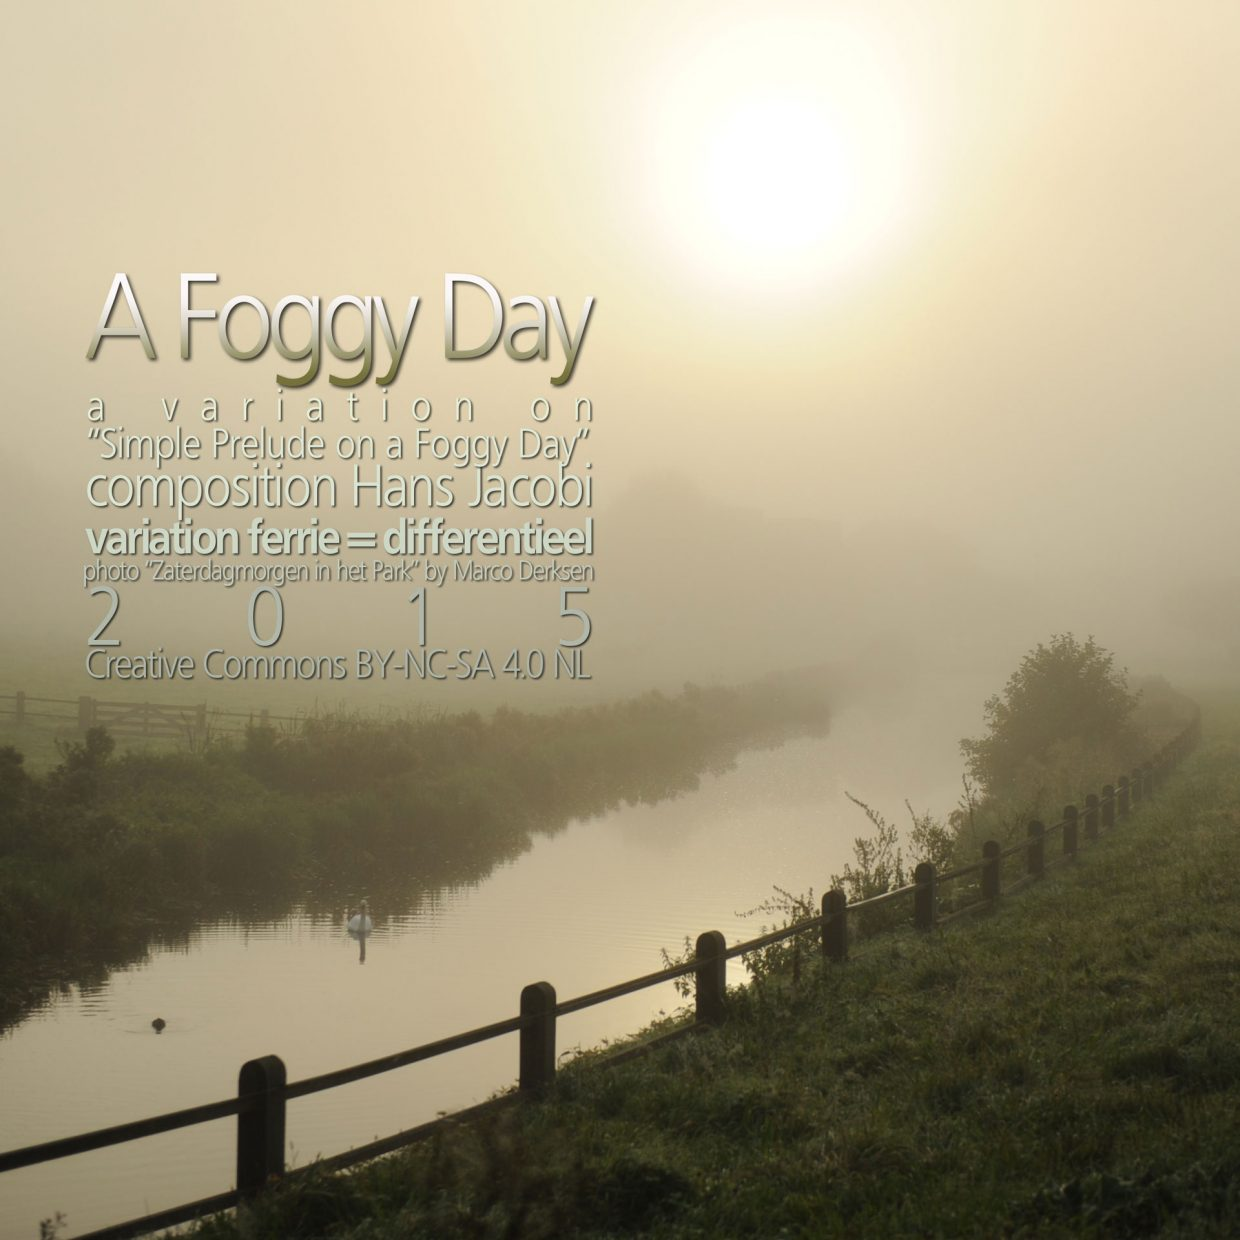 A Foggy Day cover